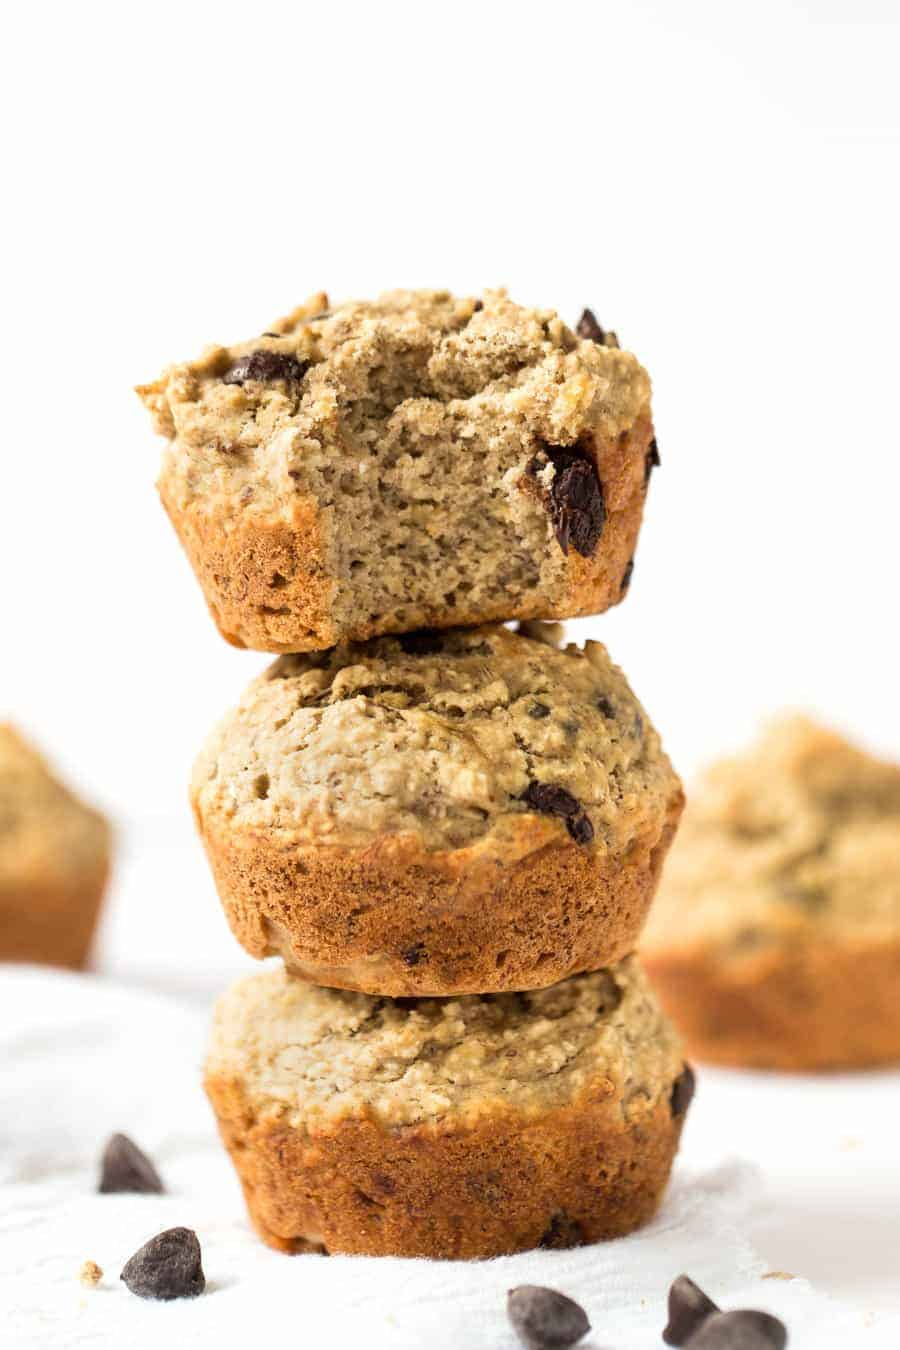 These SKINNY Banana Chocolate Chip Quinoa Muffins are made with wholesome ingredients, sweetened naturally and taste AMAZING!